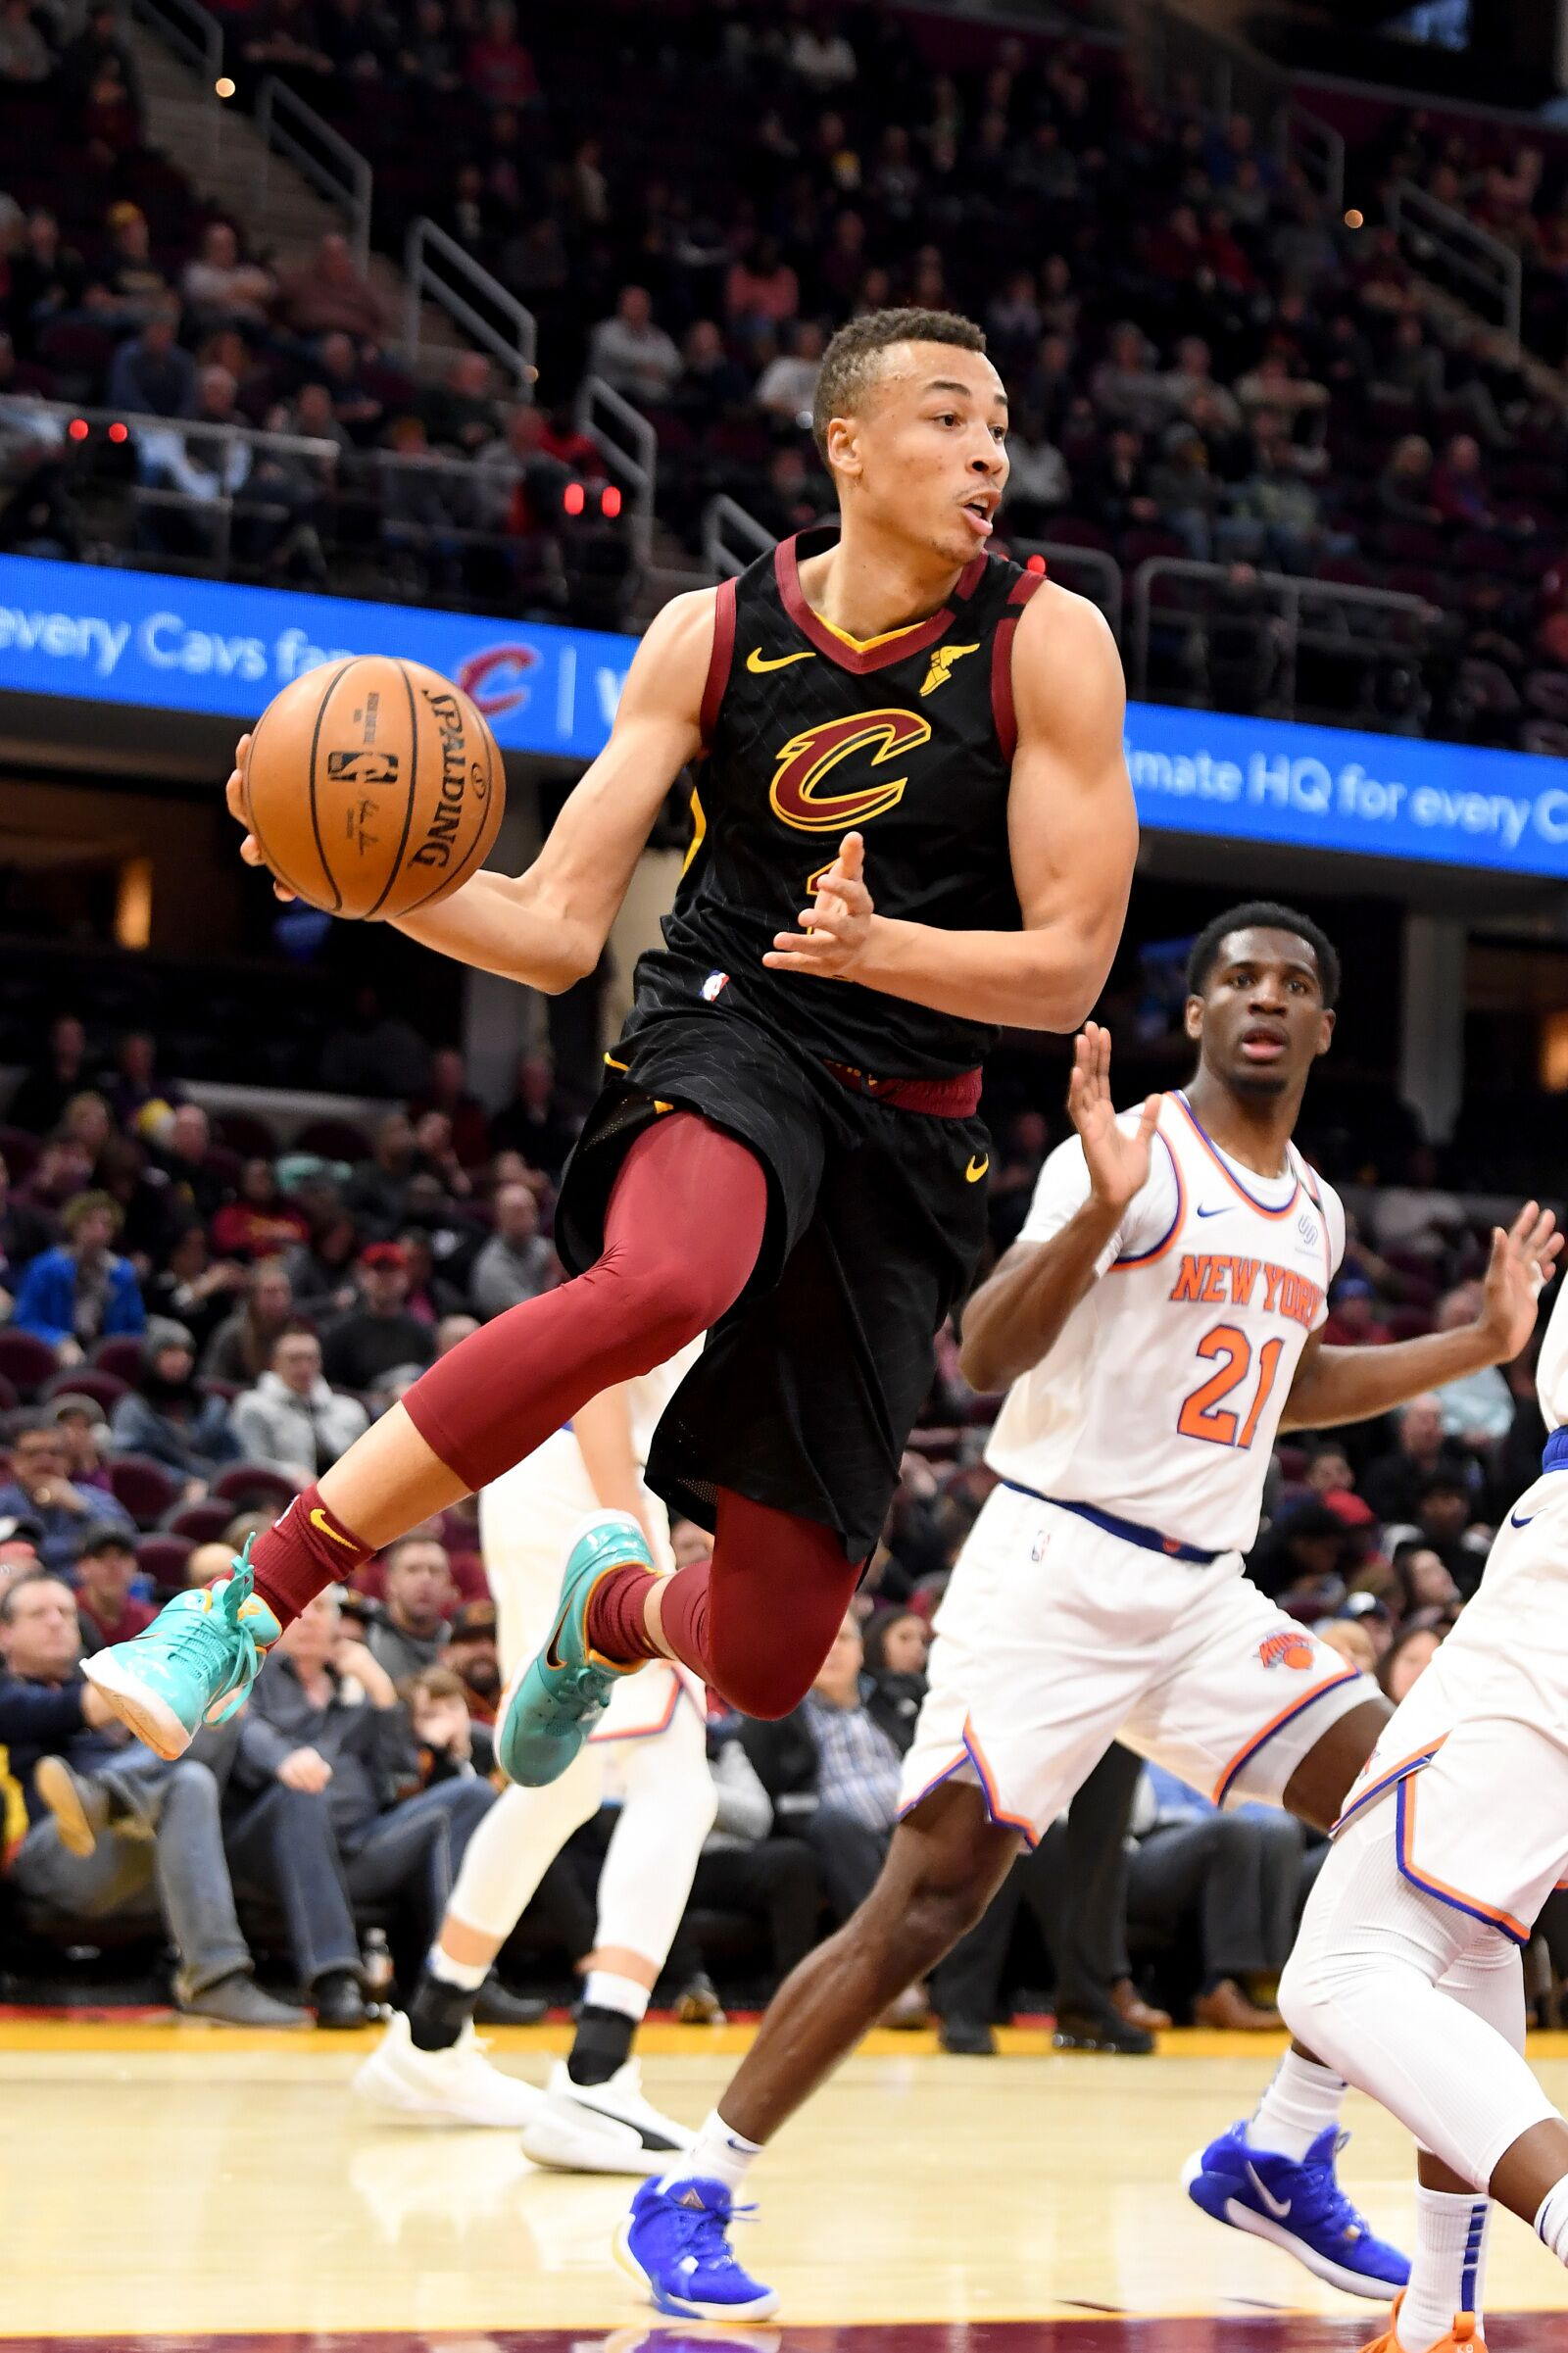 The Cavaliers need Dante Exum to get it going again